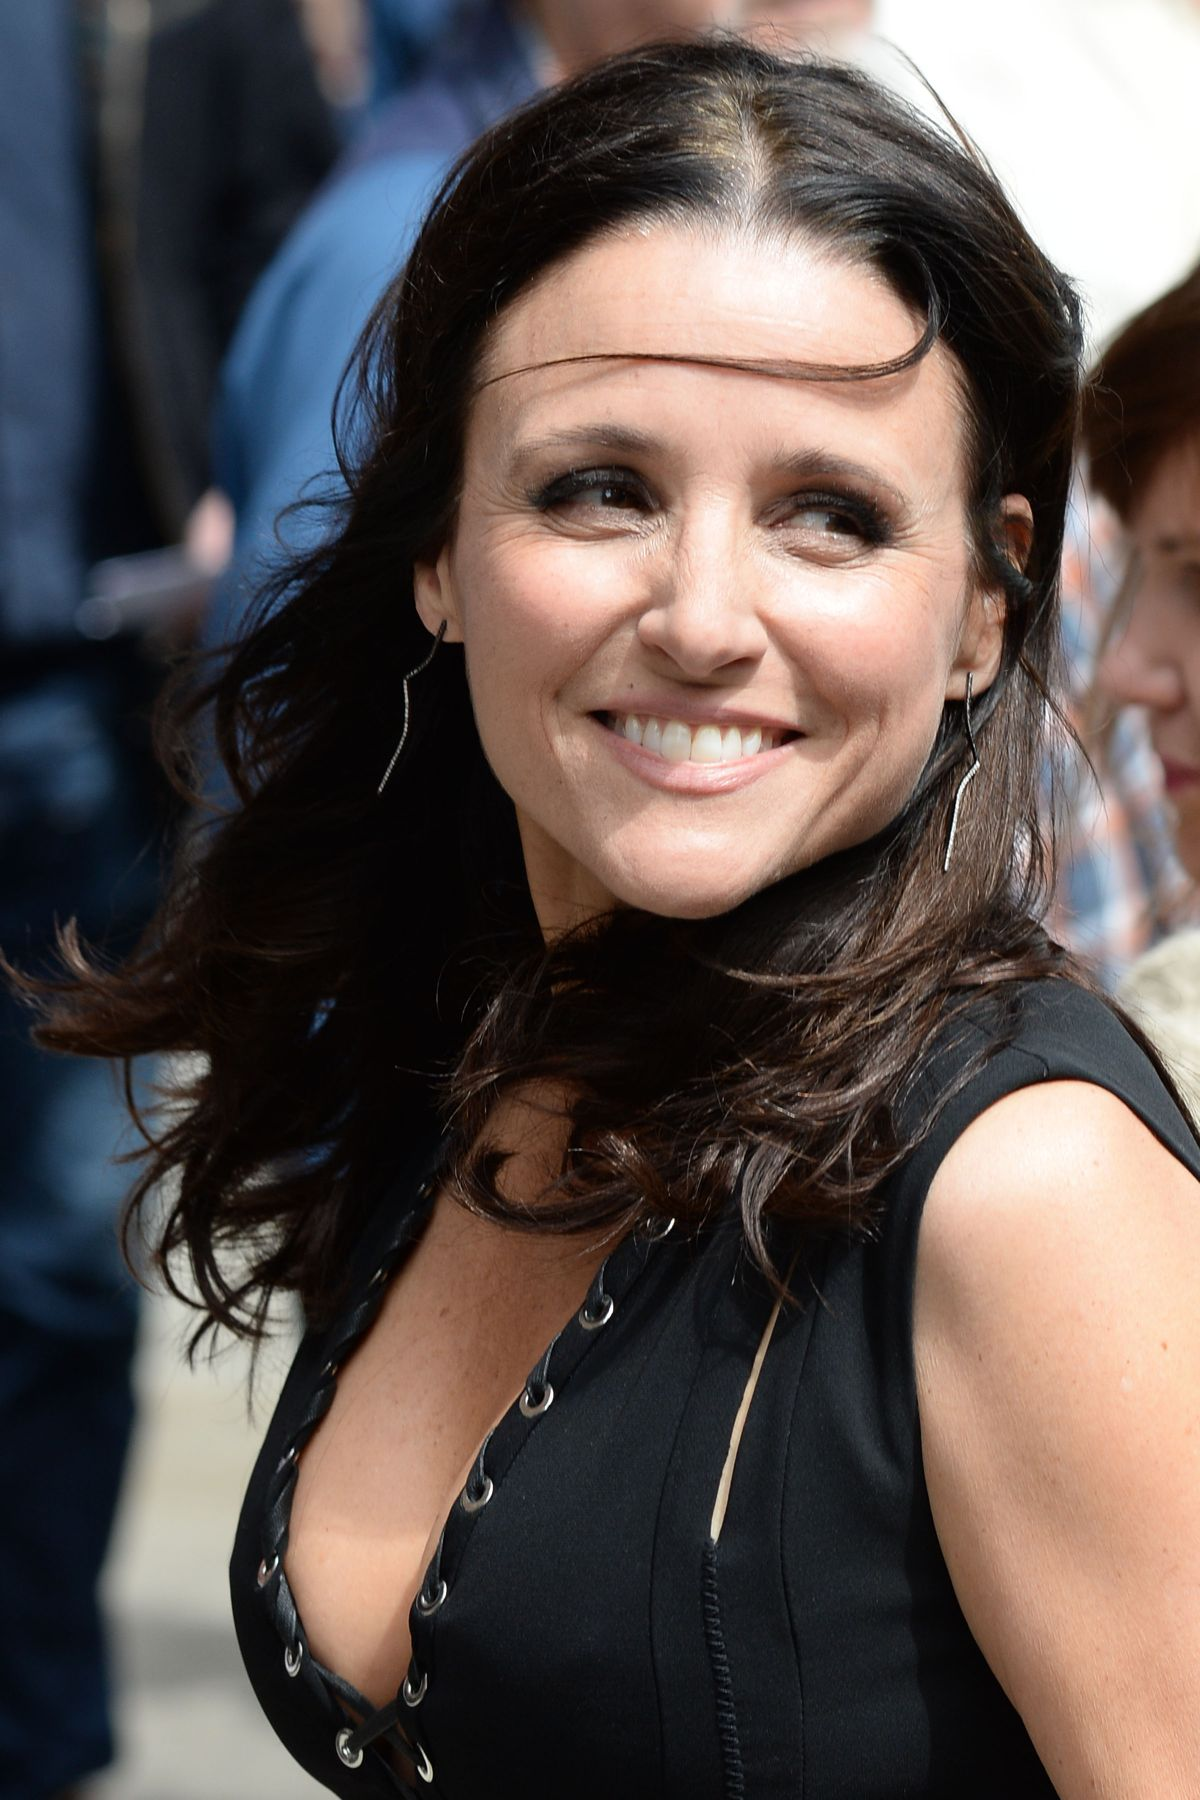 Leaked Julia Louis-Dreyfus nude photos 2019